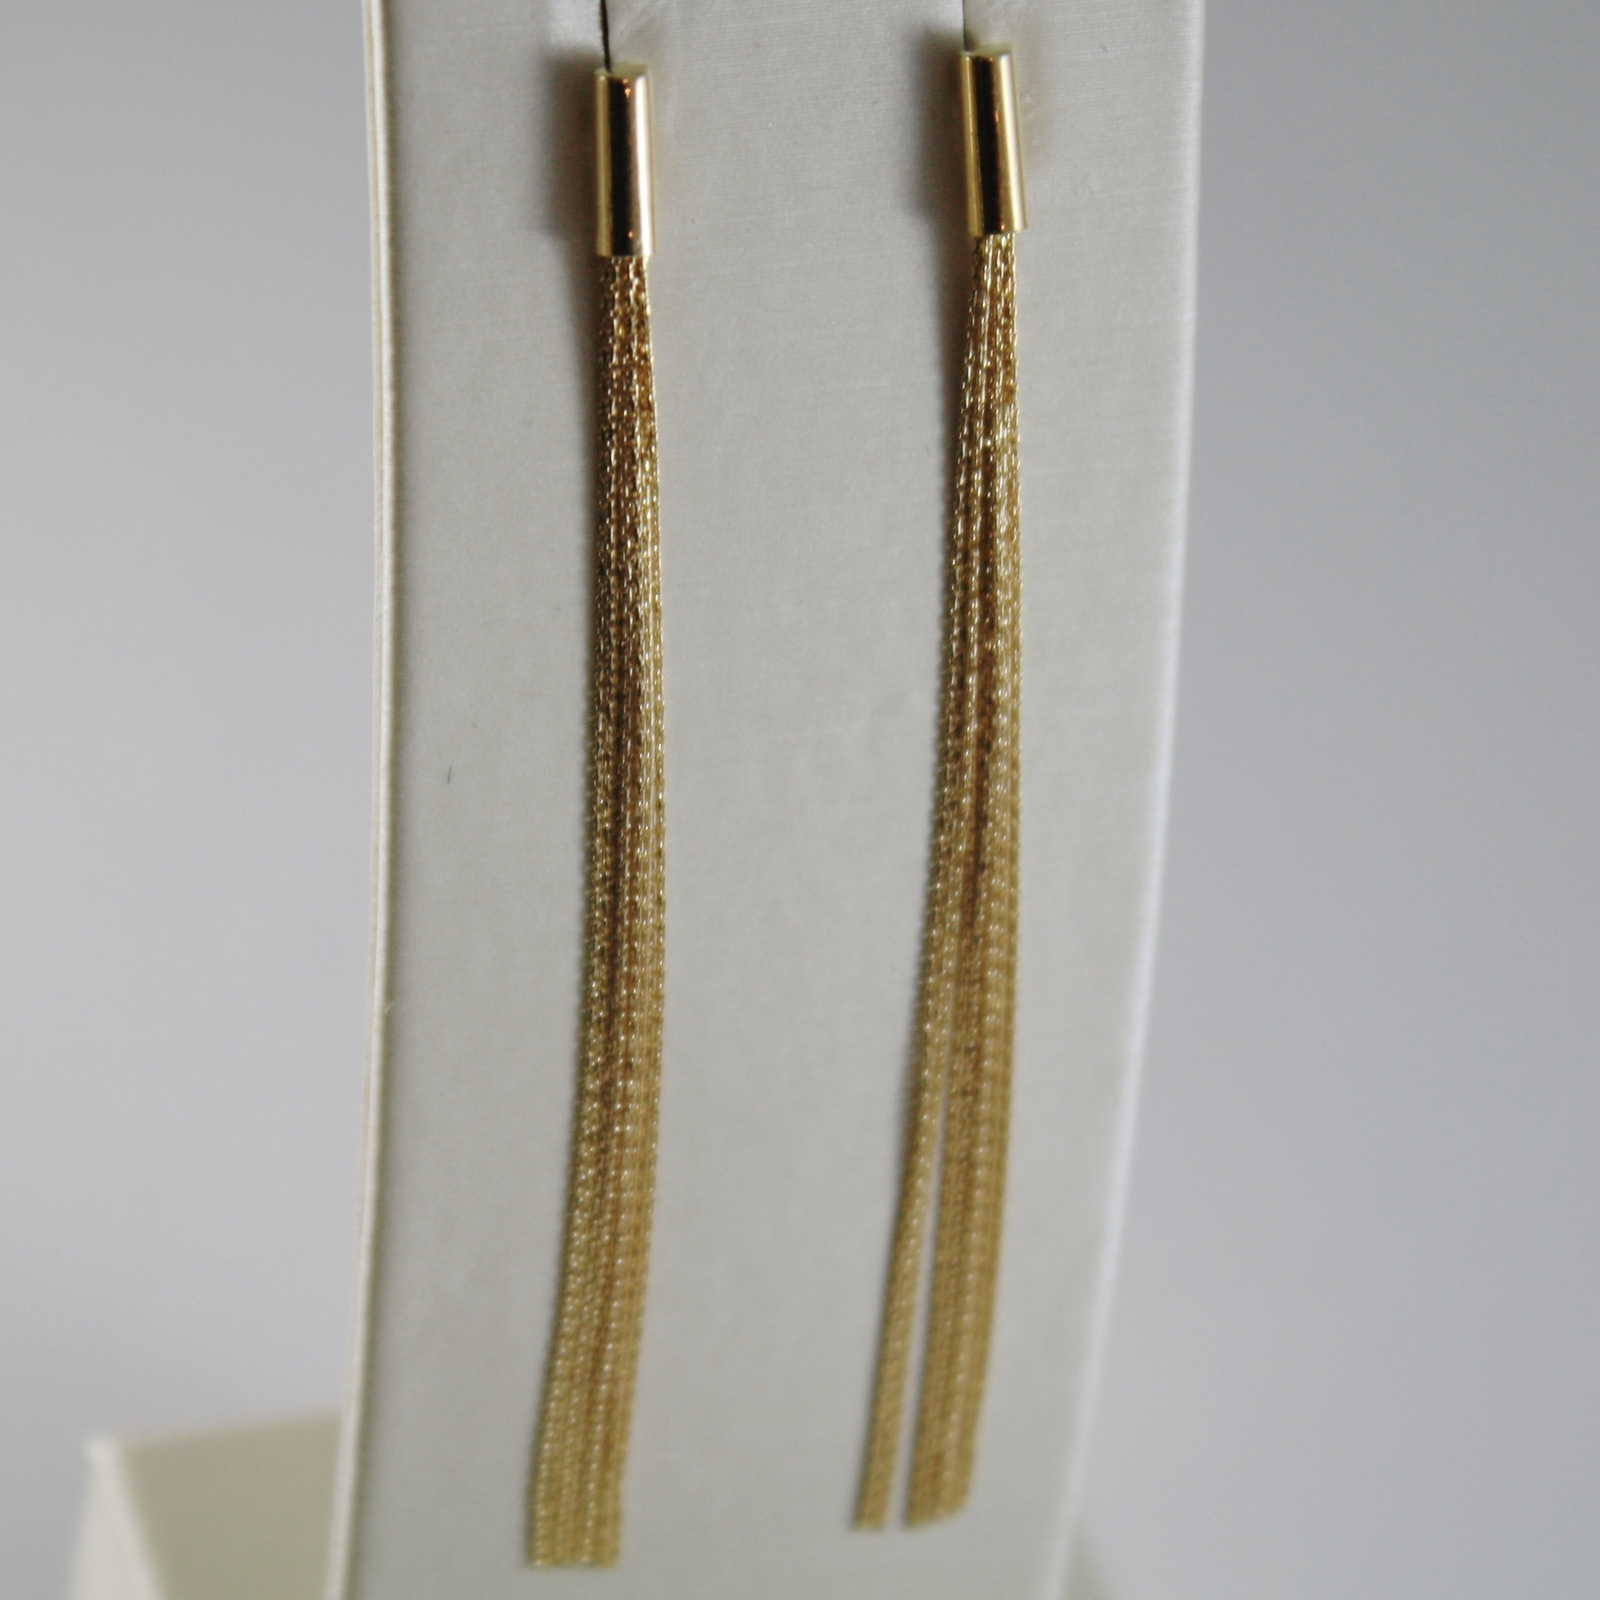 18K SOLID YELLOW GOLD PENDANT EARRINGS WITH FRINGES MADE IN ITALY